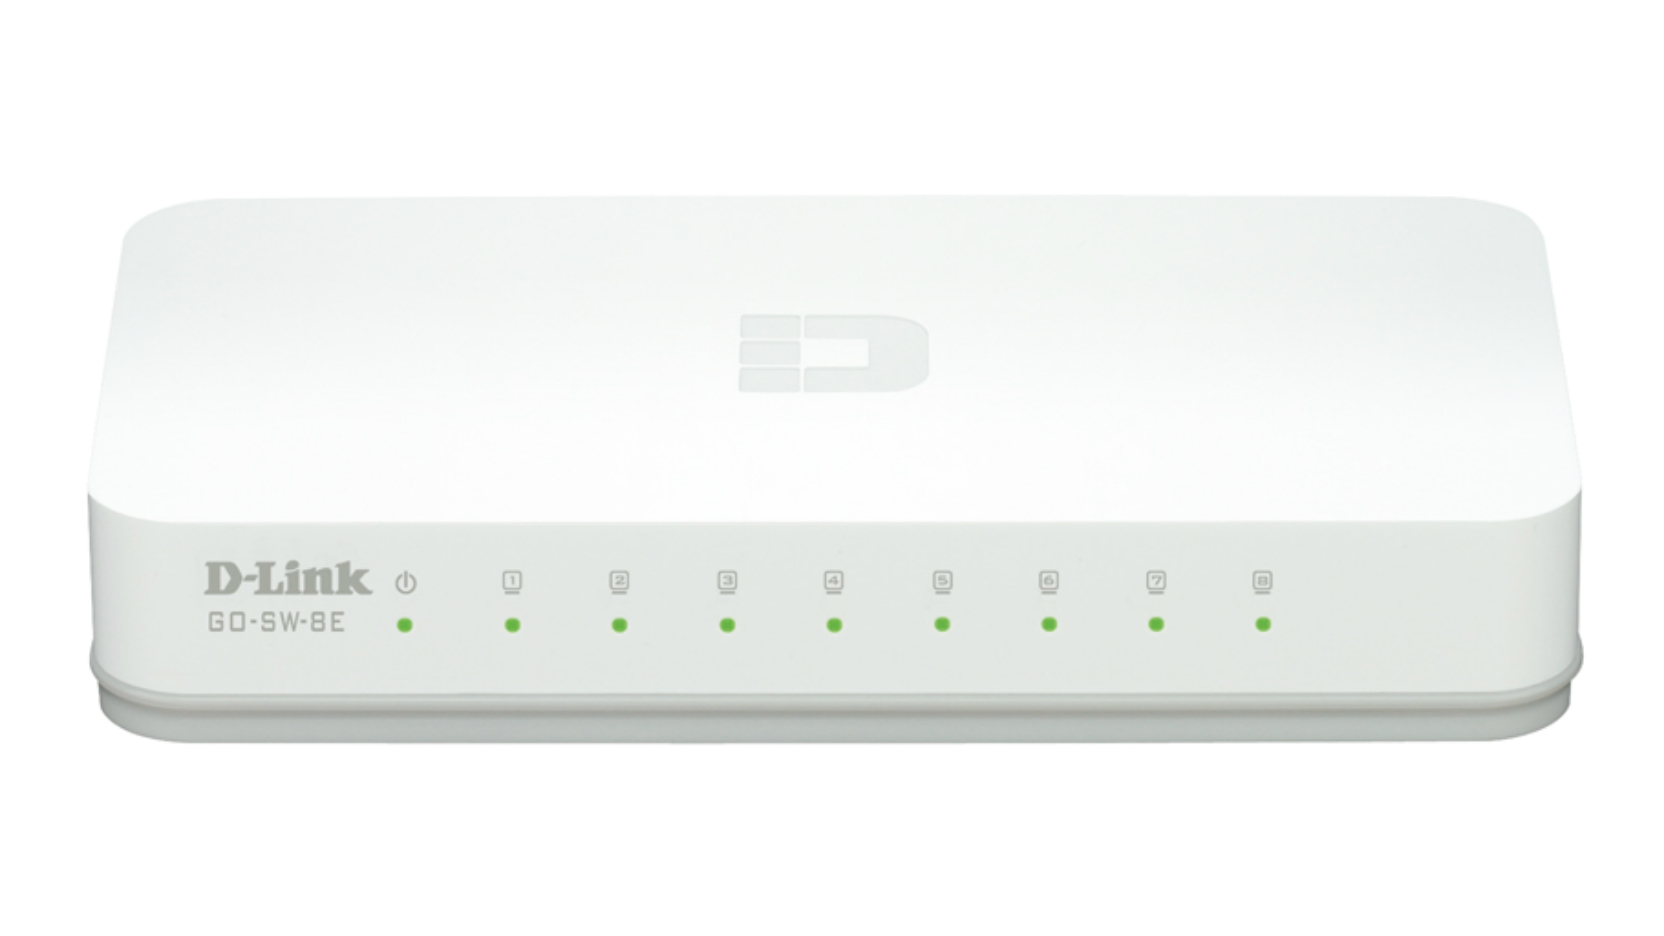 D-Link GO-SW-8E/E Unmanaged Fast Ethernet (10/100) White network switch